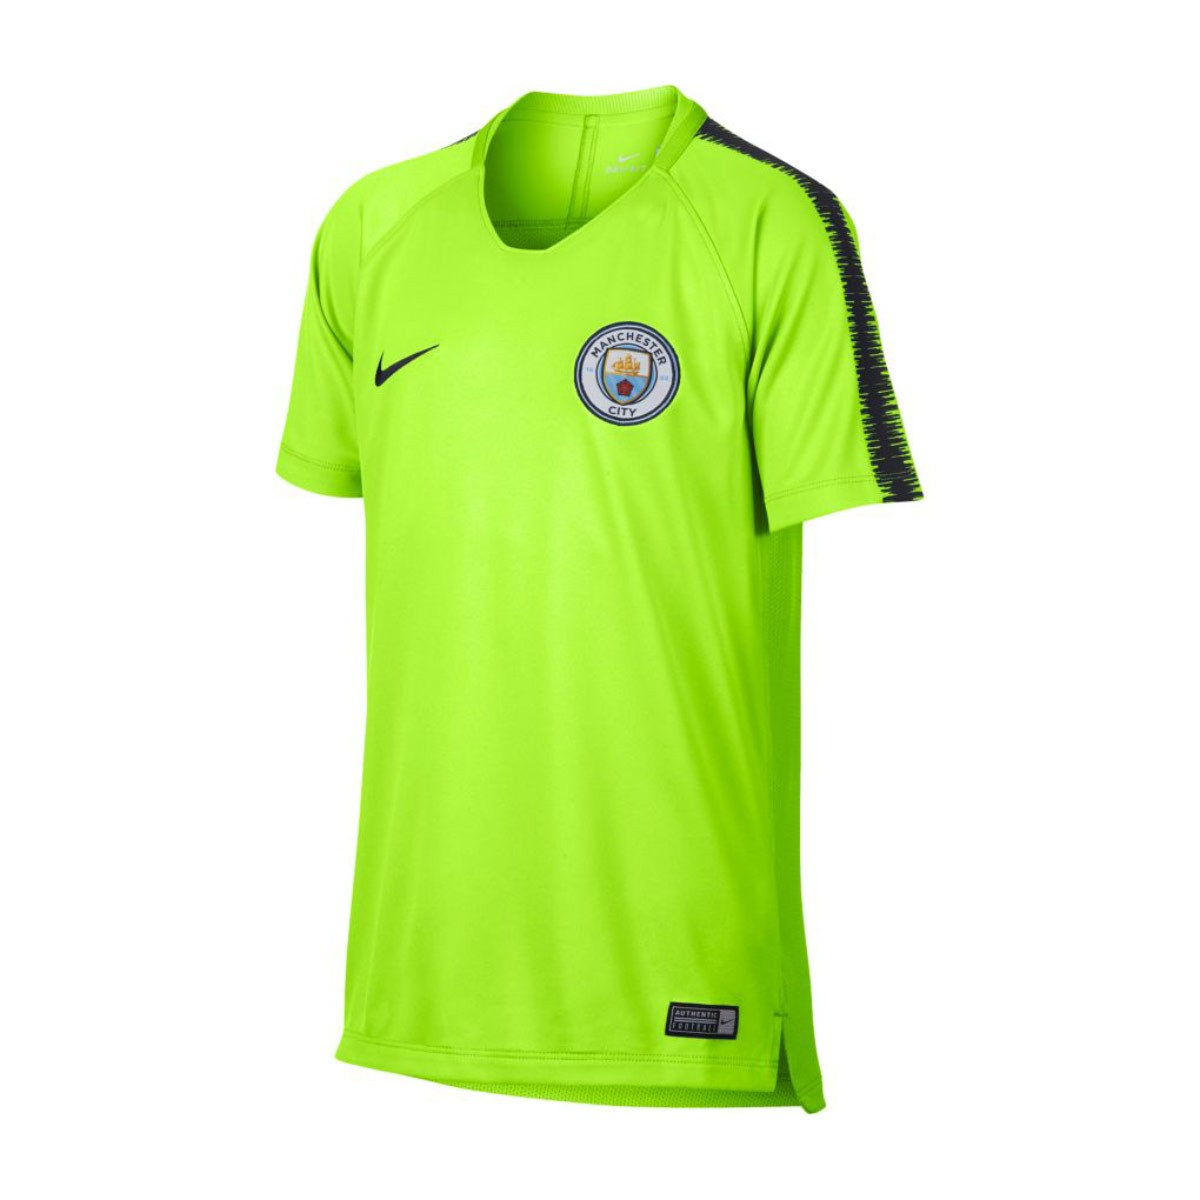 100% authentic 951b2 63482 Camiseta Manchester City FC Squad 2018-2019 Niño Volt-Dark obsidian